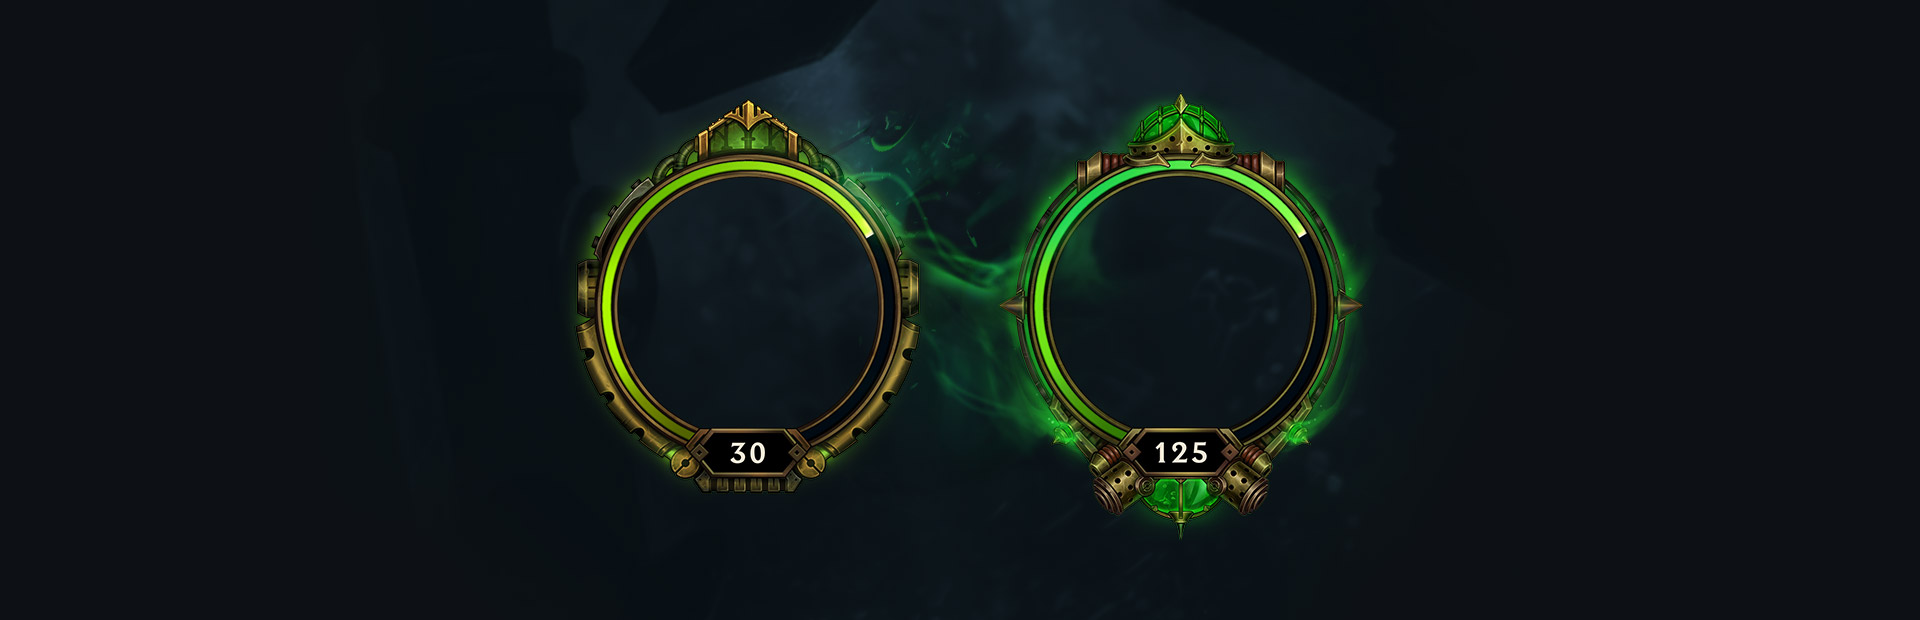 Visual difference between the first green tier (level 30) and the second (level 125)